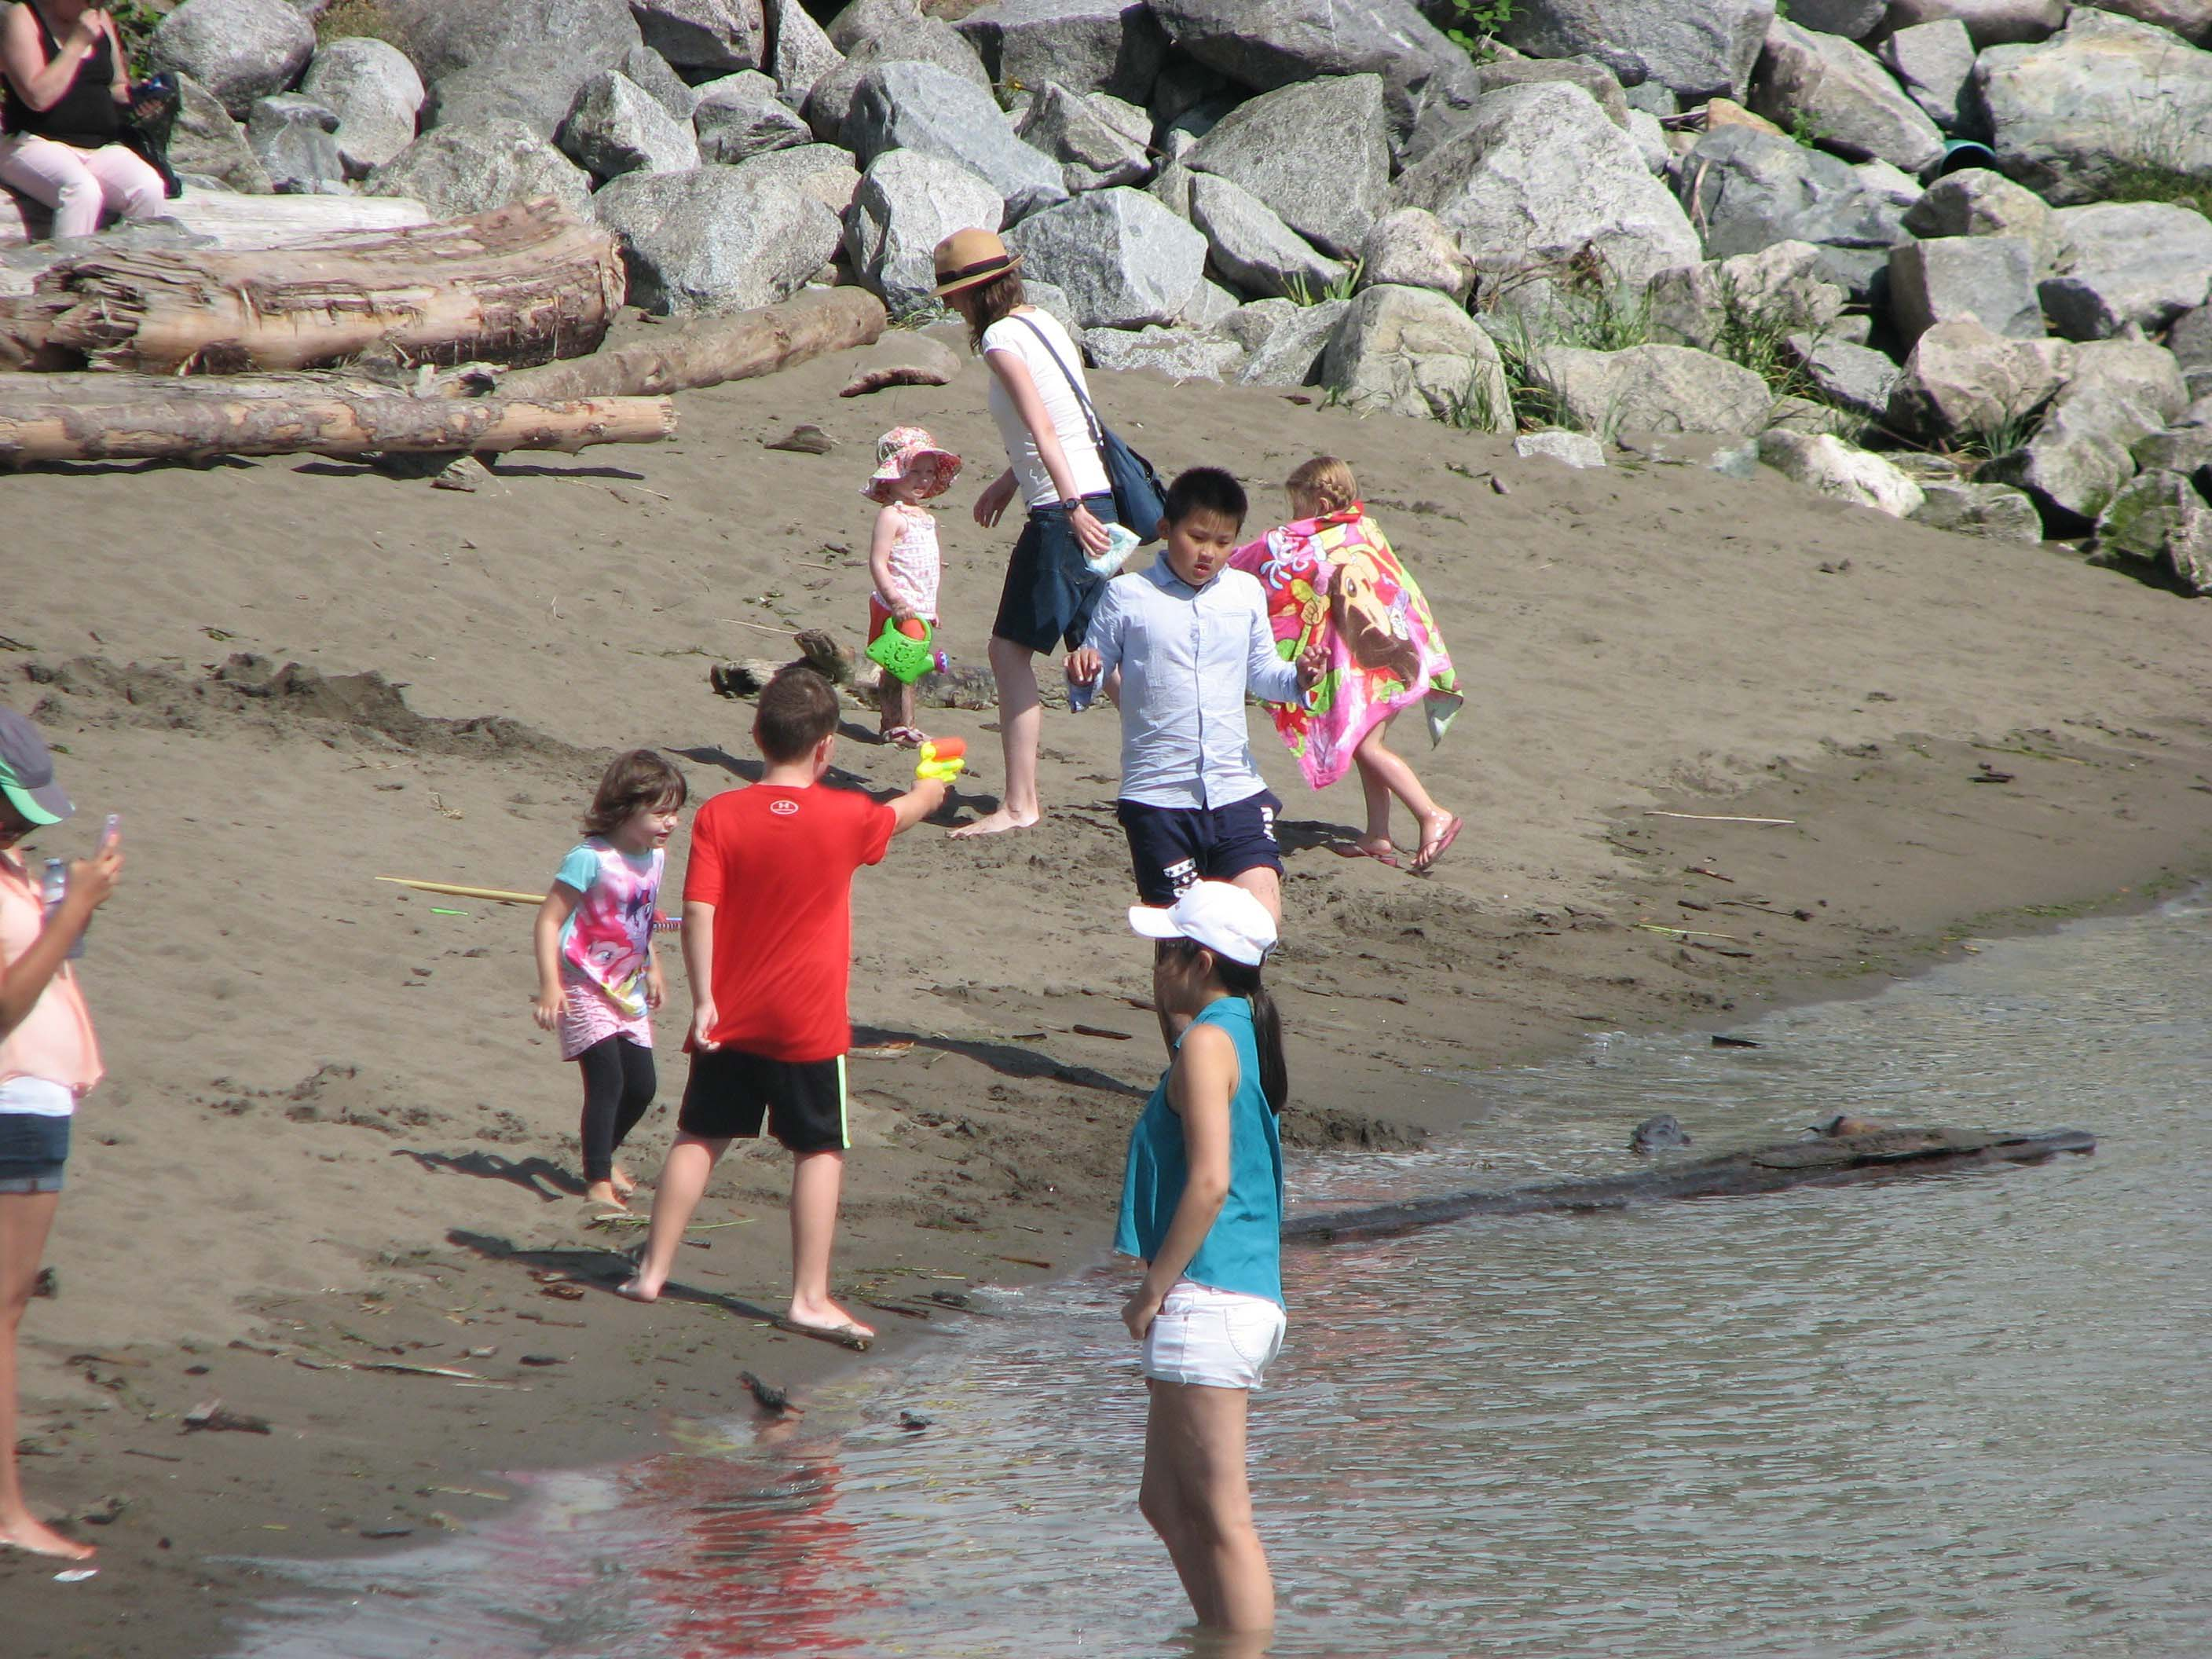 Kids play on the beach at Garry Point Park